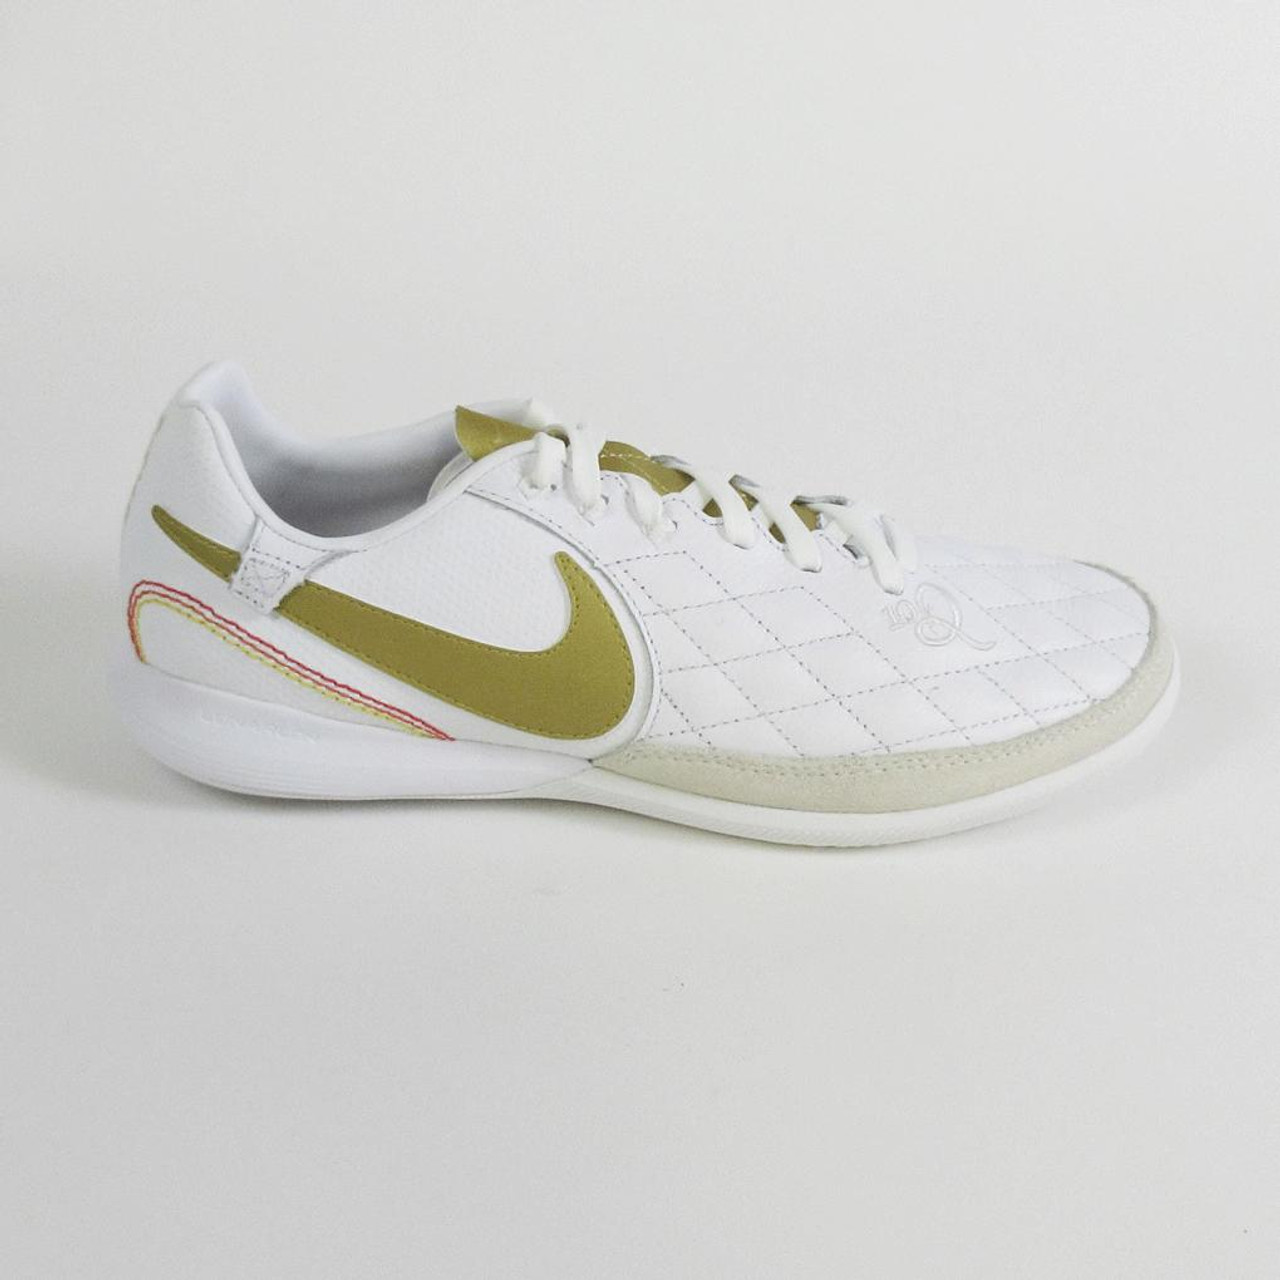 578a8045543 NIKE LUNAR LEGENDX 7 PRO 10R IC white gold - Soccer Plus